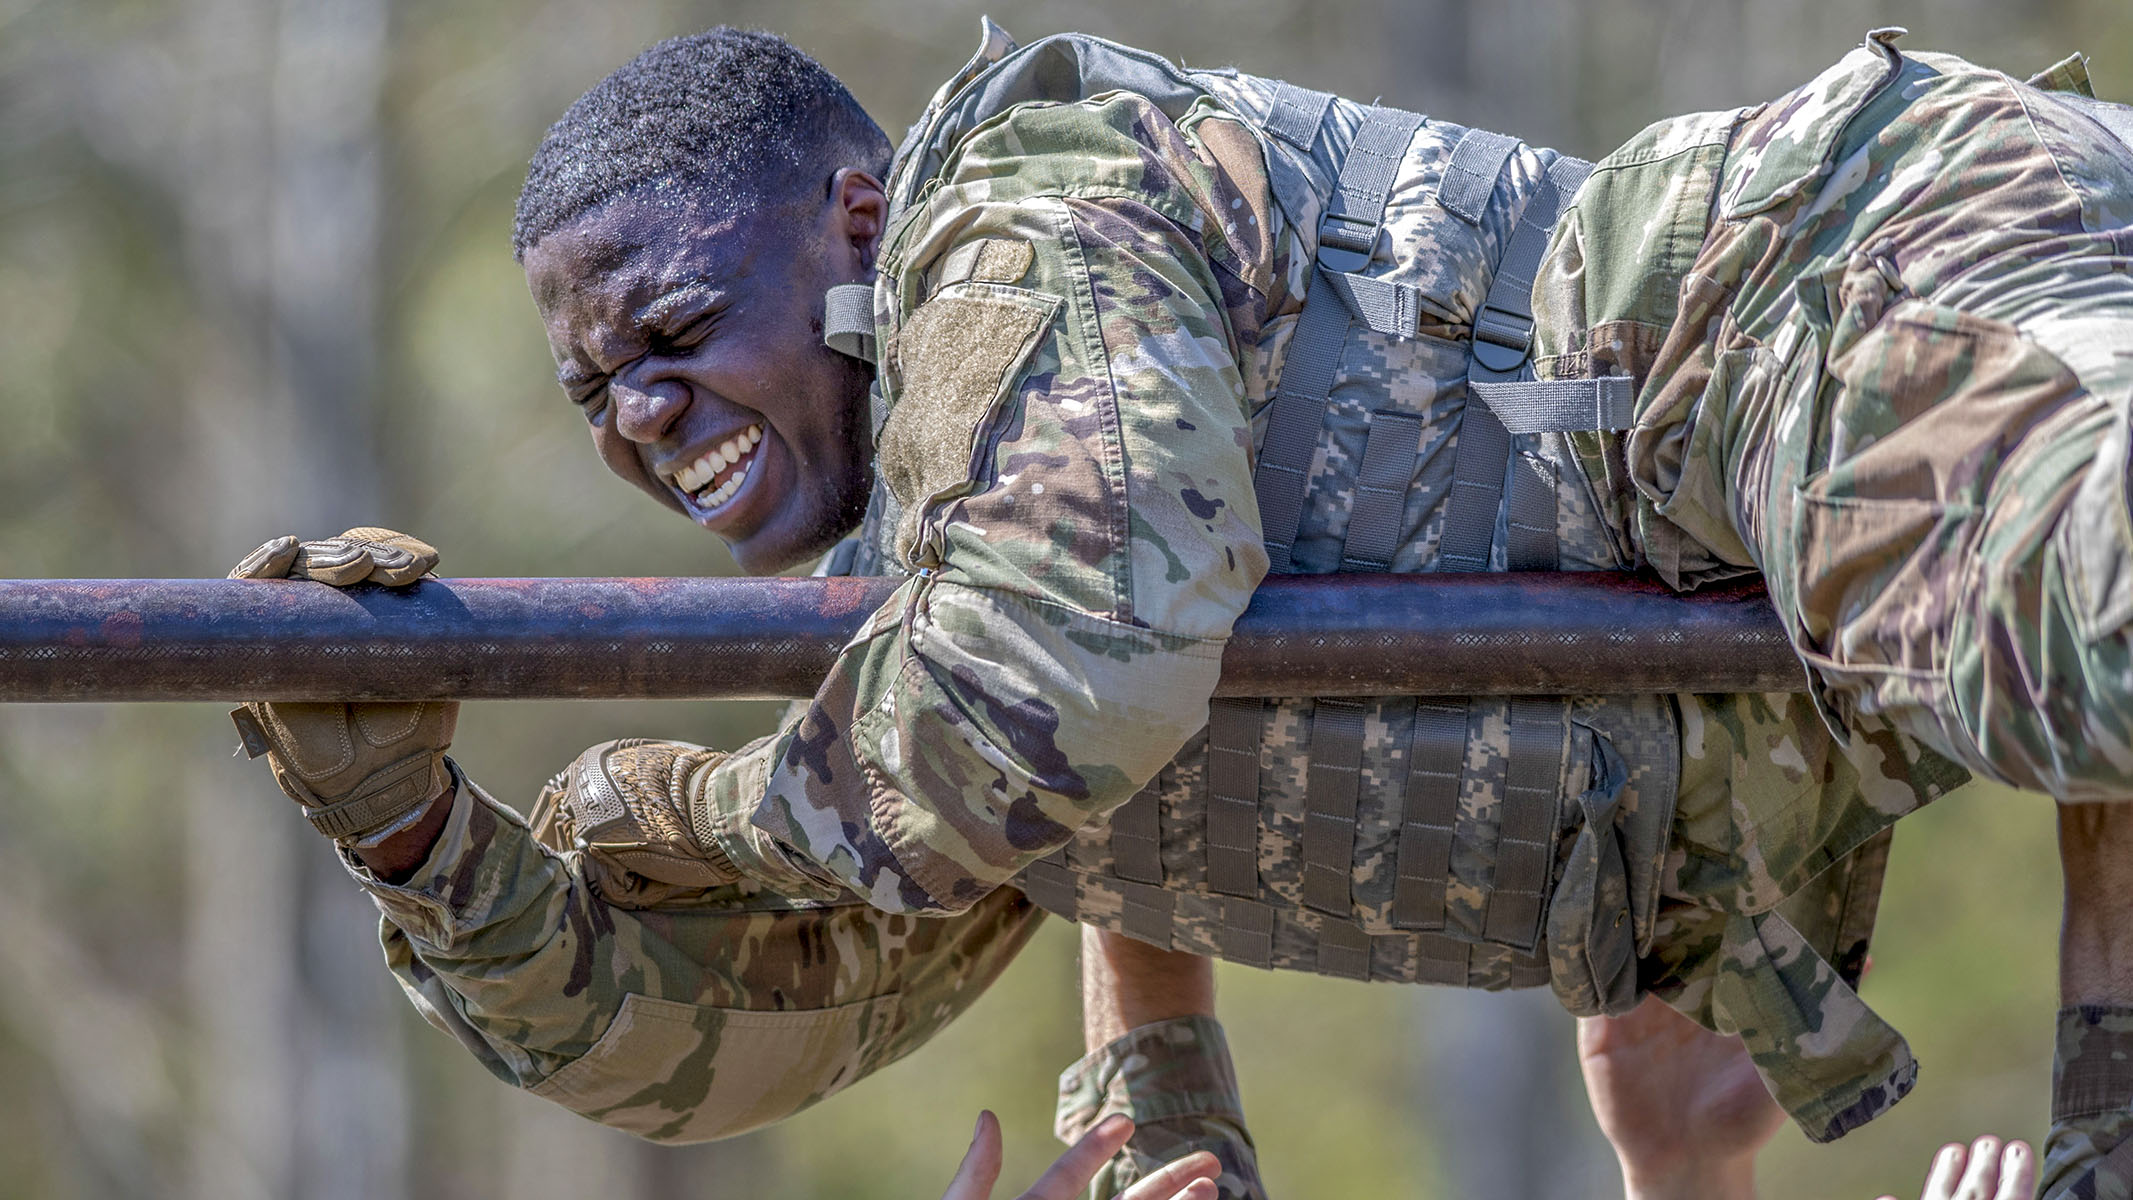 U.S. Army Tradale Bryant, assigned to 55th Signal Company (Combat Camera), pulls himself over a high bar during the obstacle course portion of the 2018 SPC Hilda I. Clayton Best Combat Camera Competition, Marine Corps Base Quantico, Virginia, May 1, 2018. The competition is an annual event open to all branches of the military, it's hosted by the 55th Signal Company (Combat Camera) in order to test the technical and tactical proficiencies of Department of Defense combat photographers. (Staff Sgt. Pablo N. Piedra/Army)